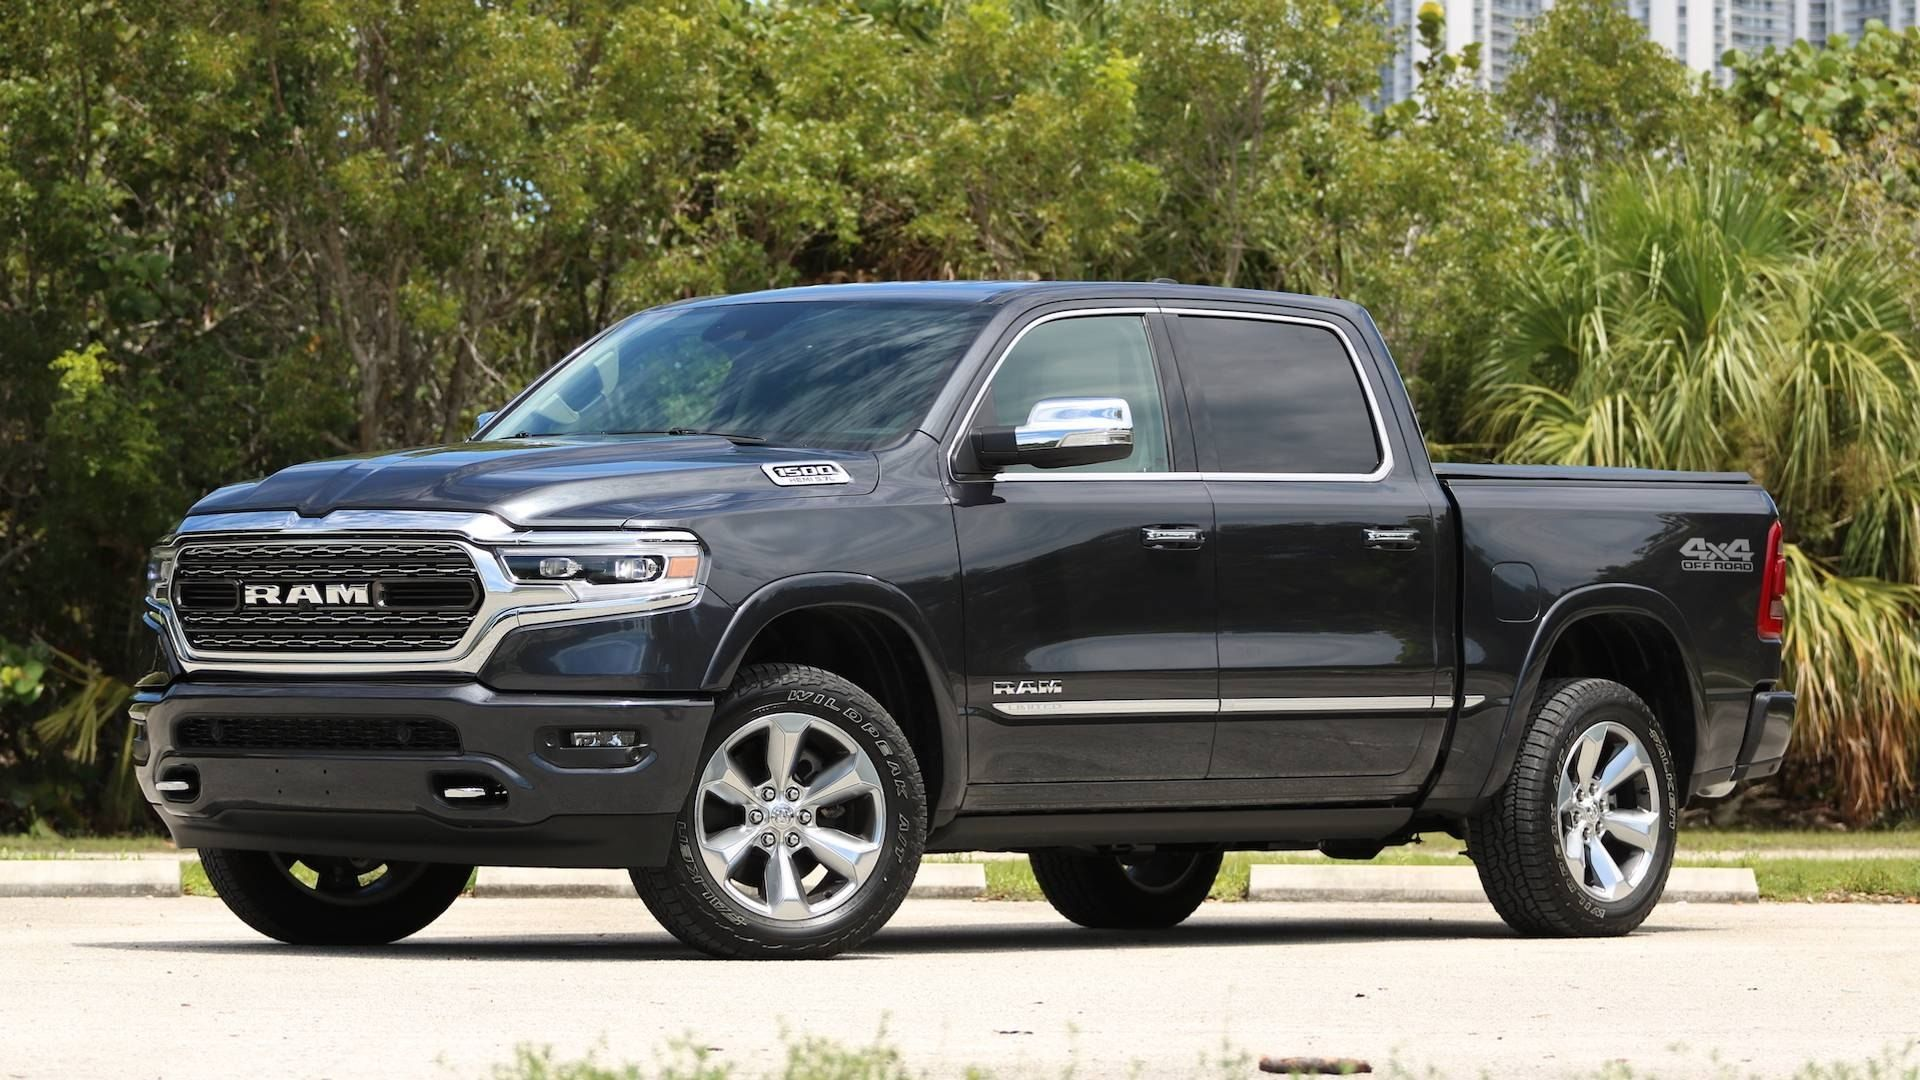 when will the 2020 Dodge Limited look like